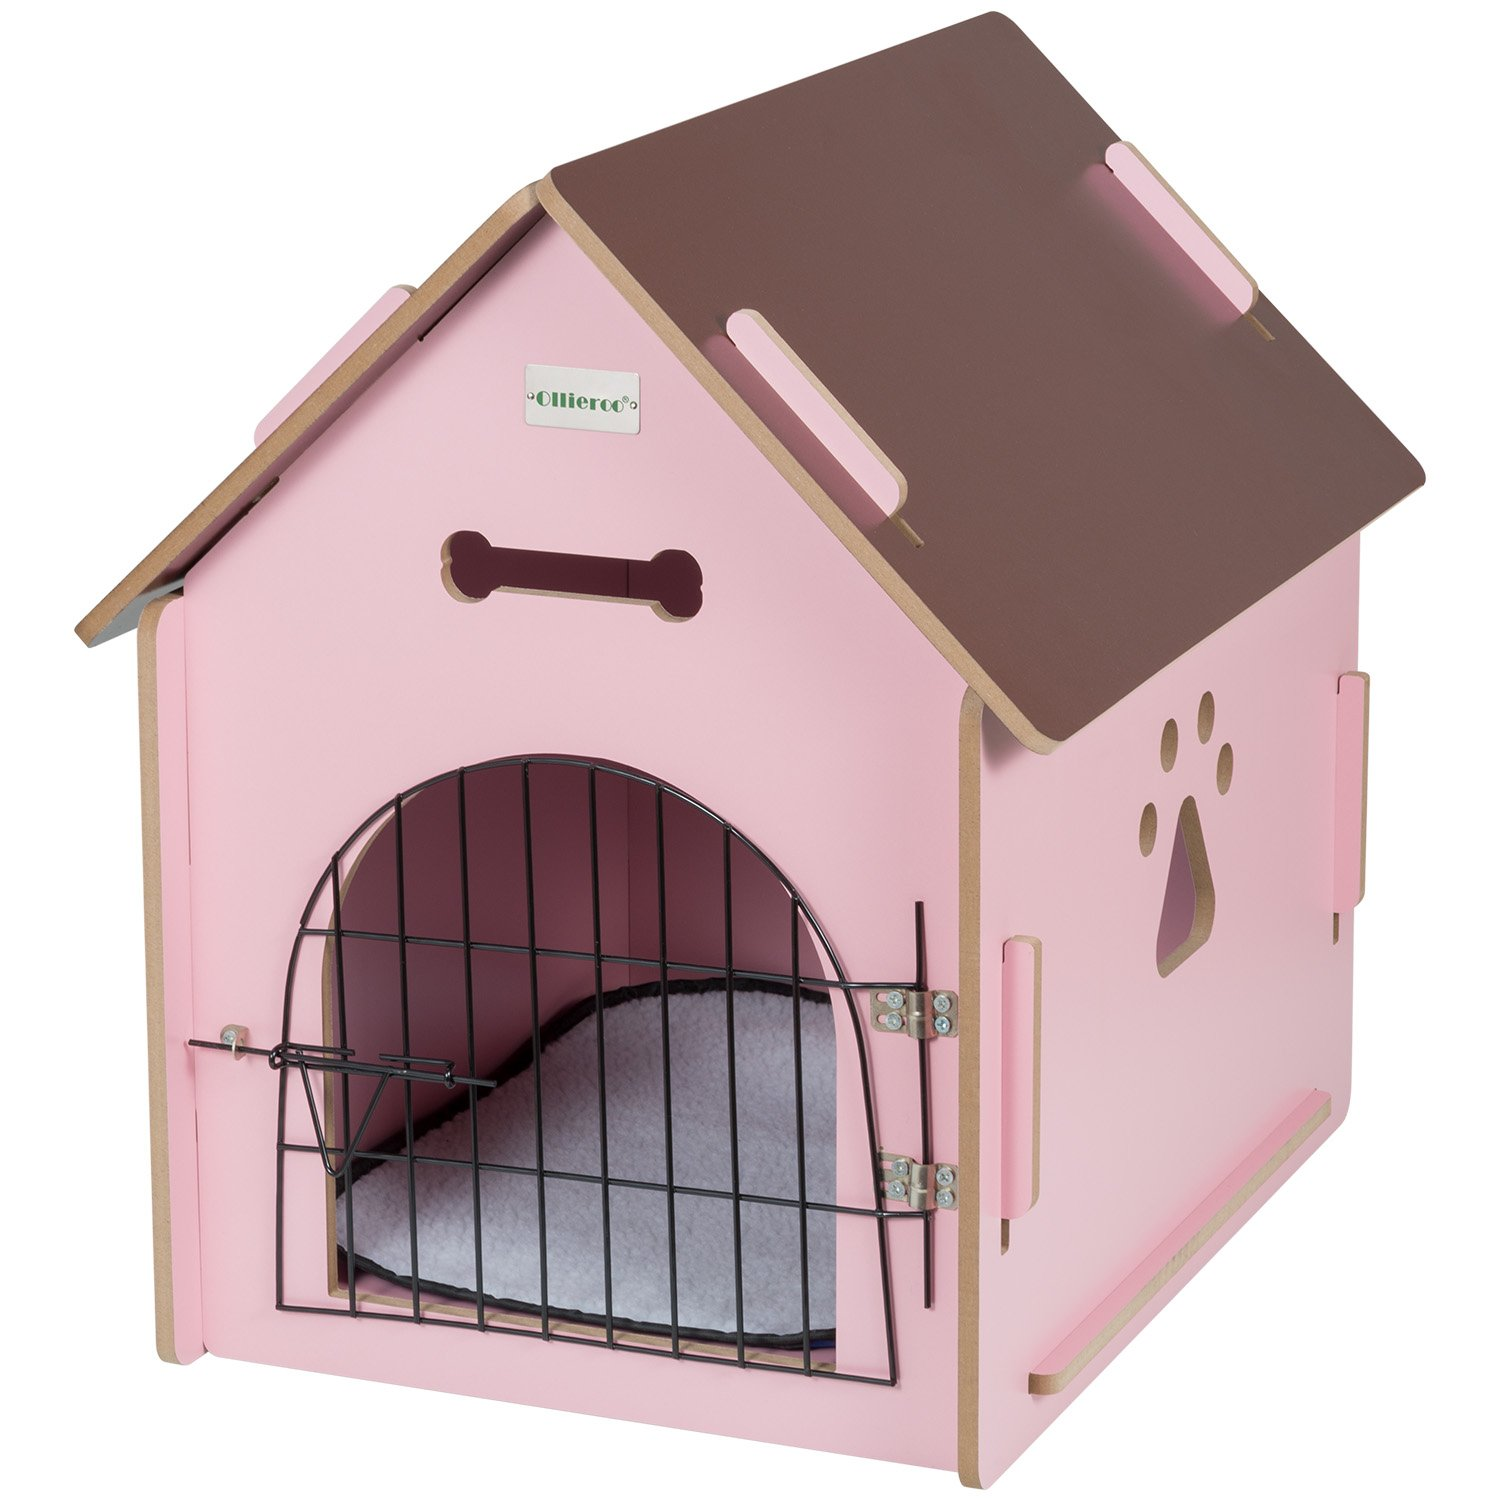 Indoor dog houses - Ollieroo Dog House Crate Wooden Kennel Indoor Condo For Small Dogs Cats Pet Home With Door